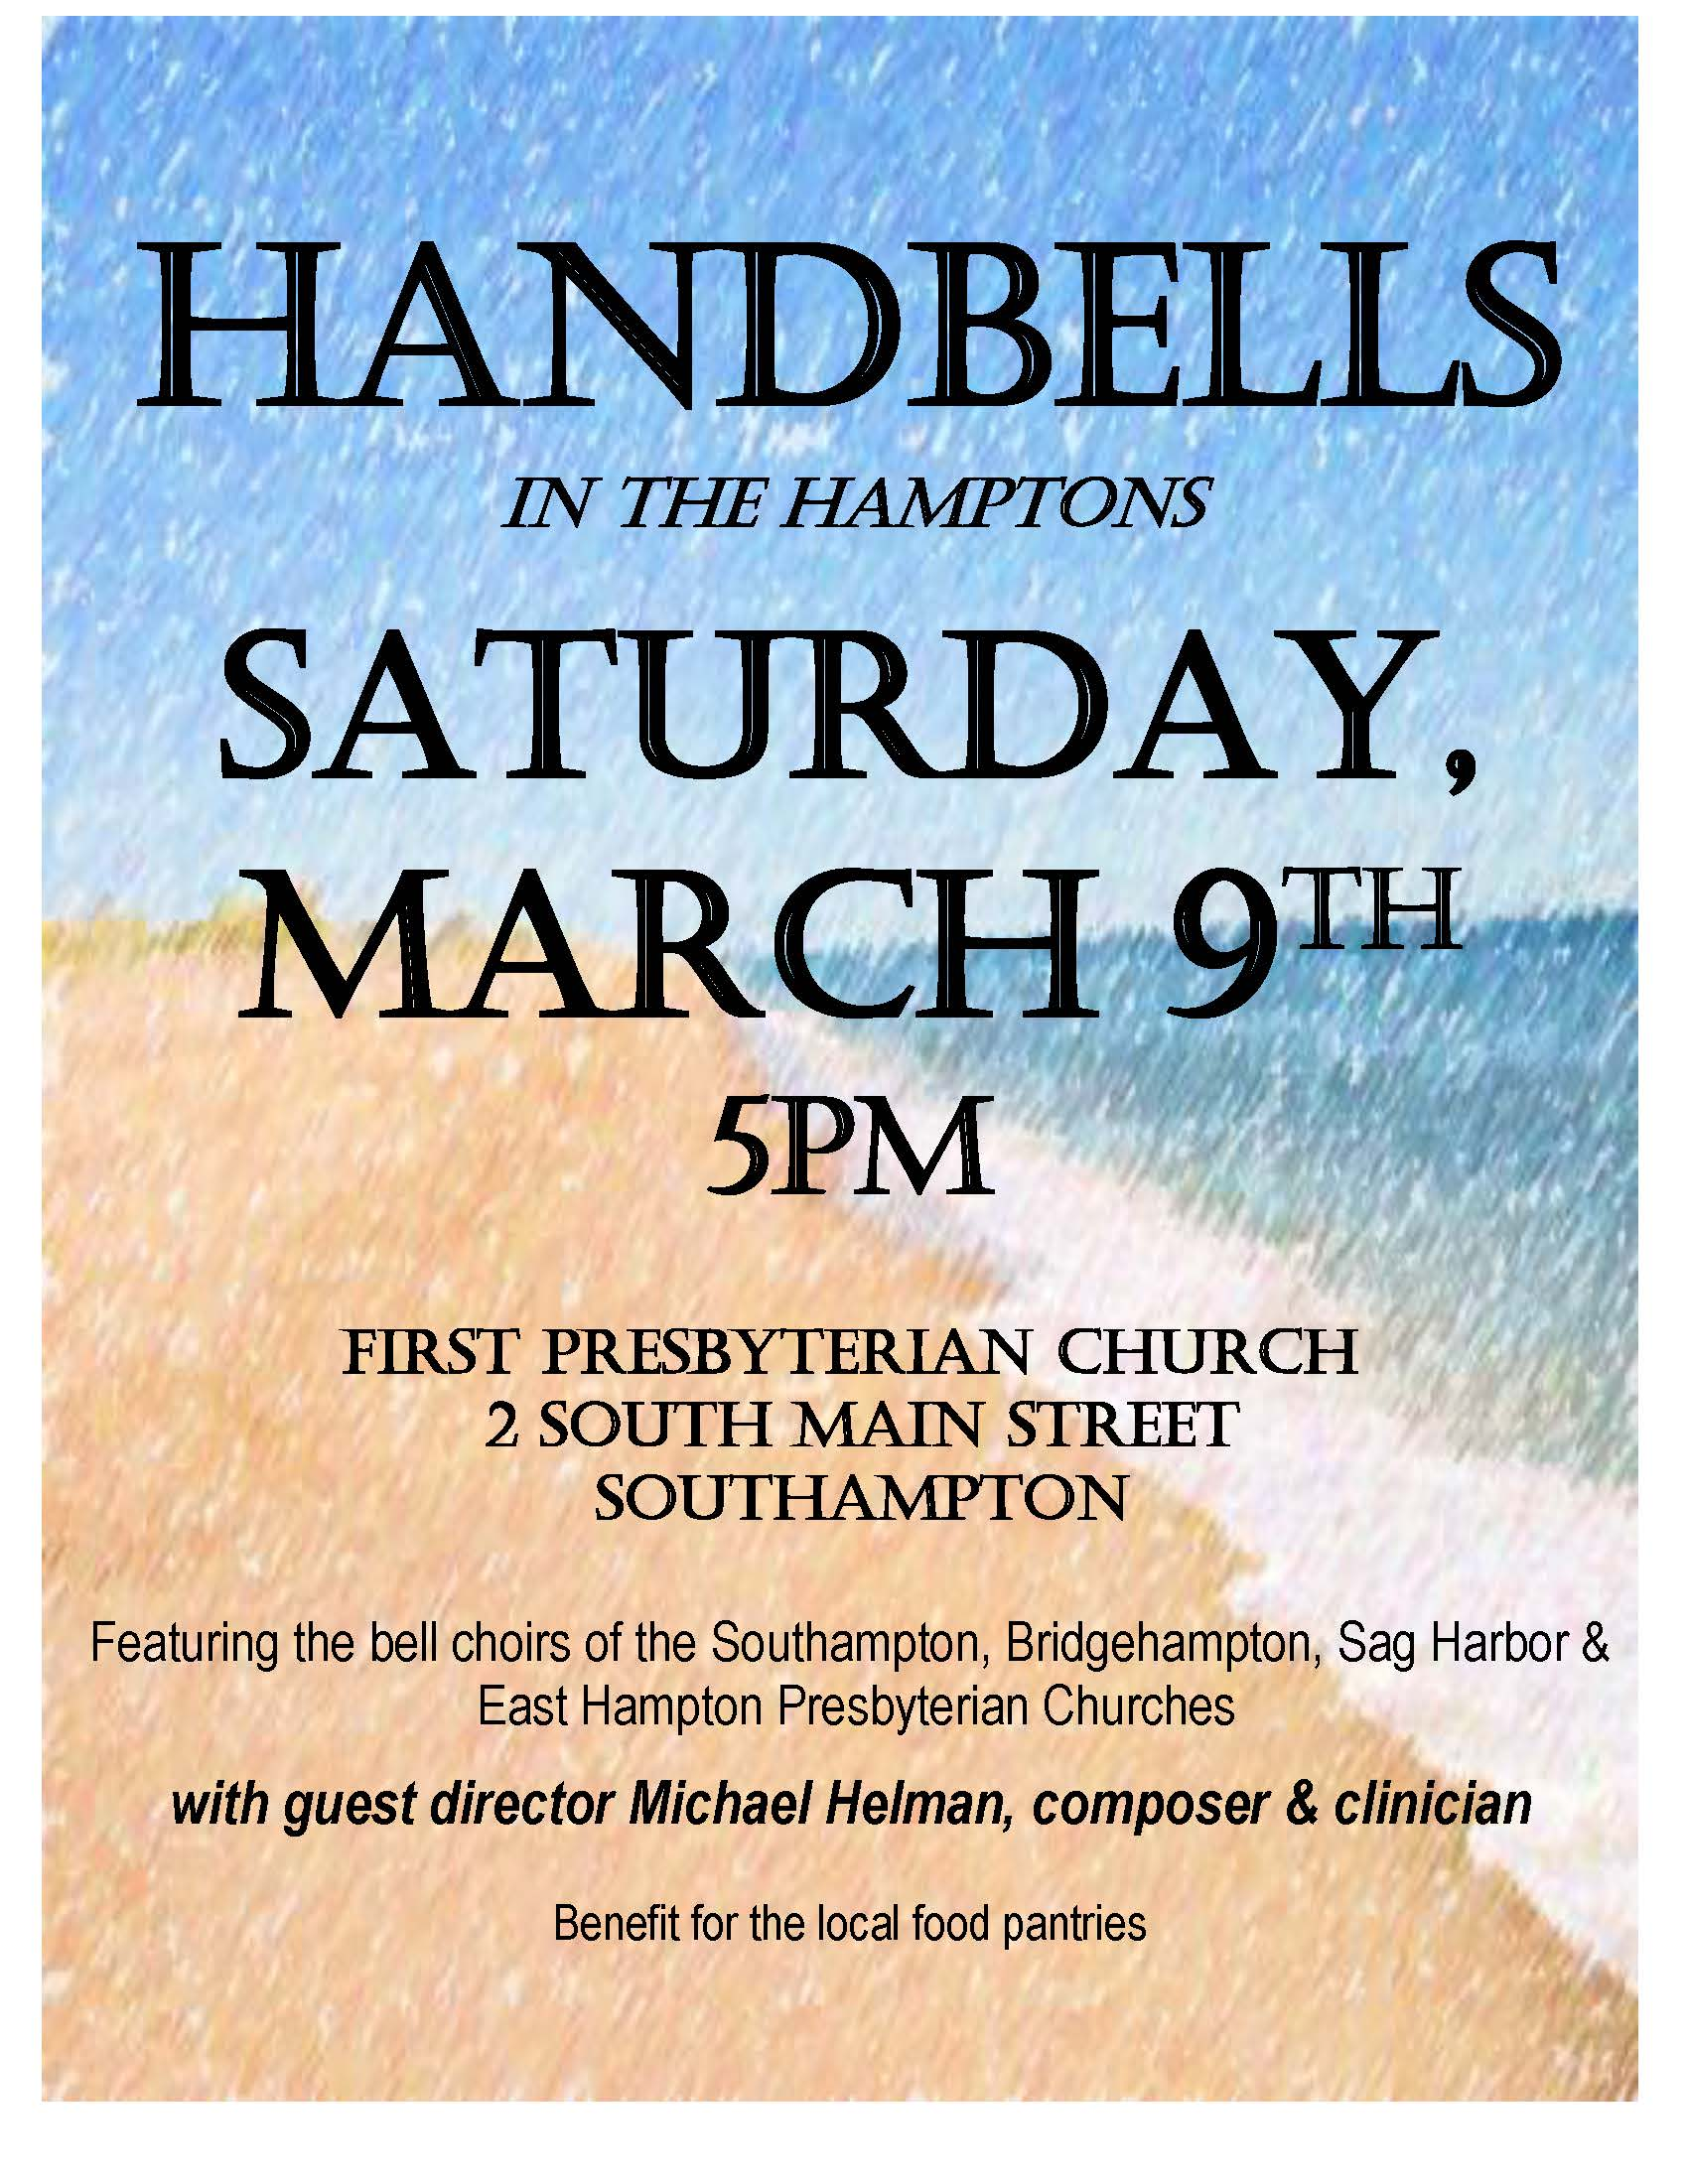 Handbells in the Hamptons poster 8x11.jpg